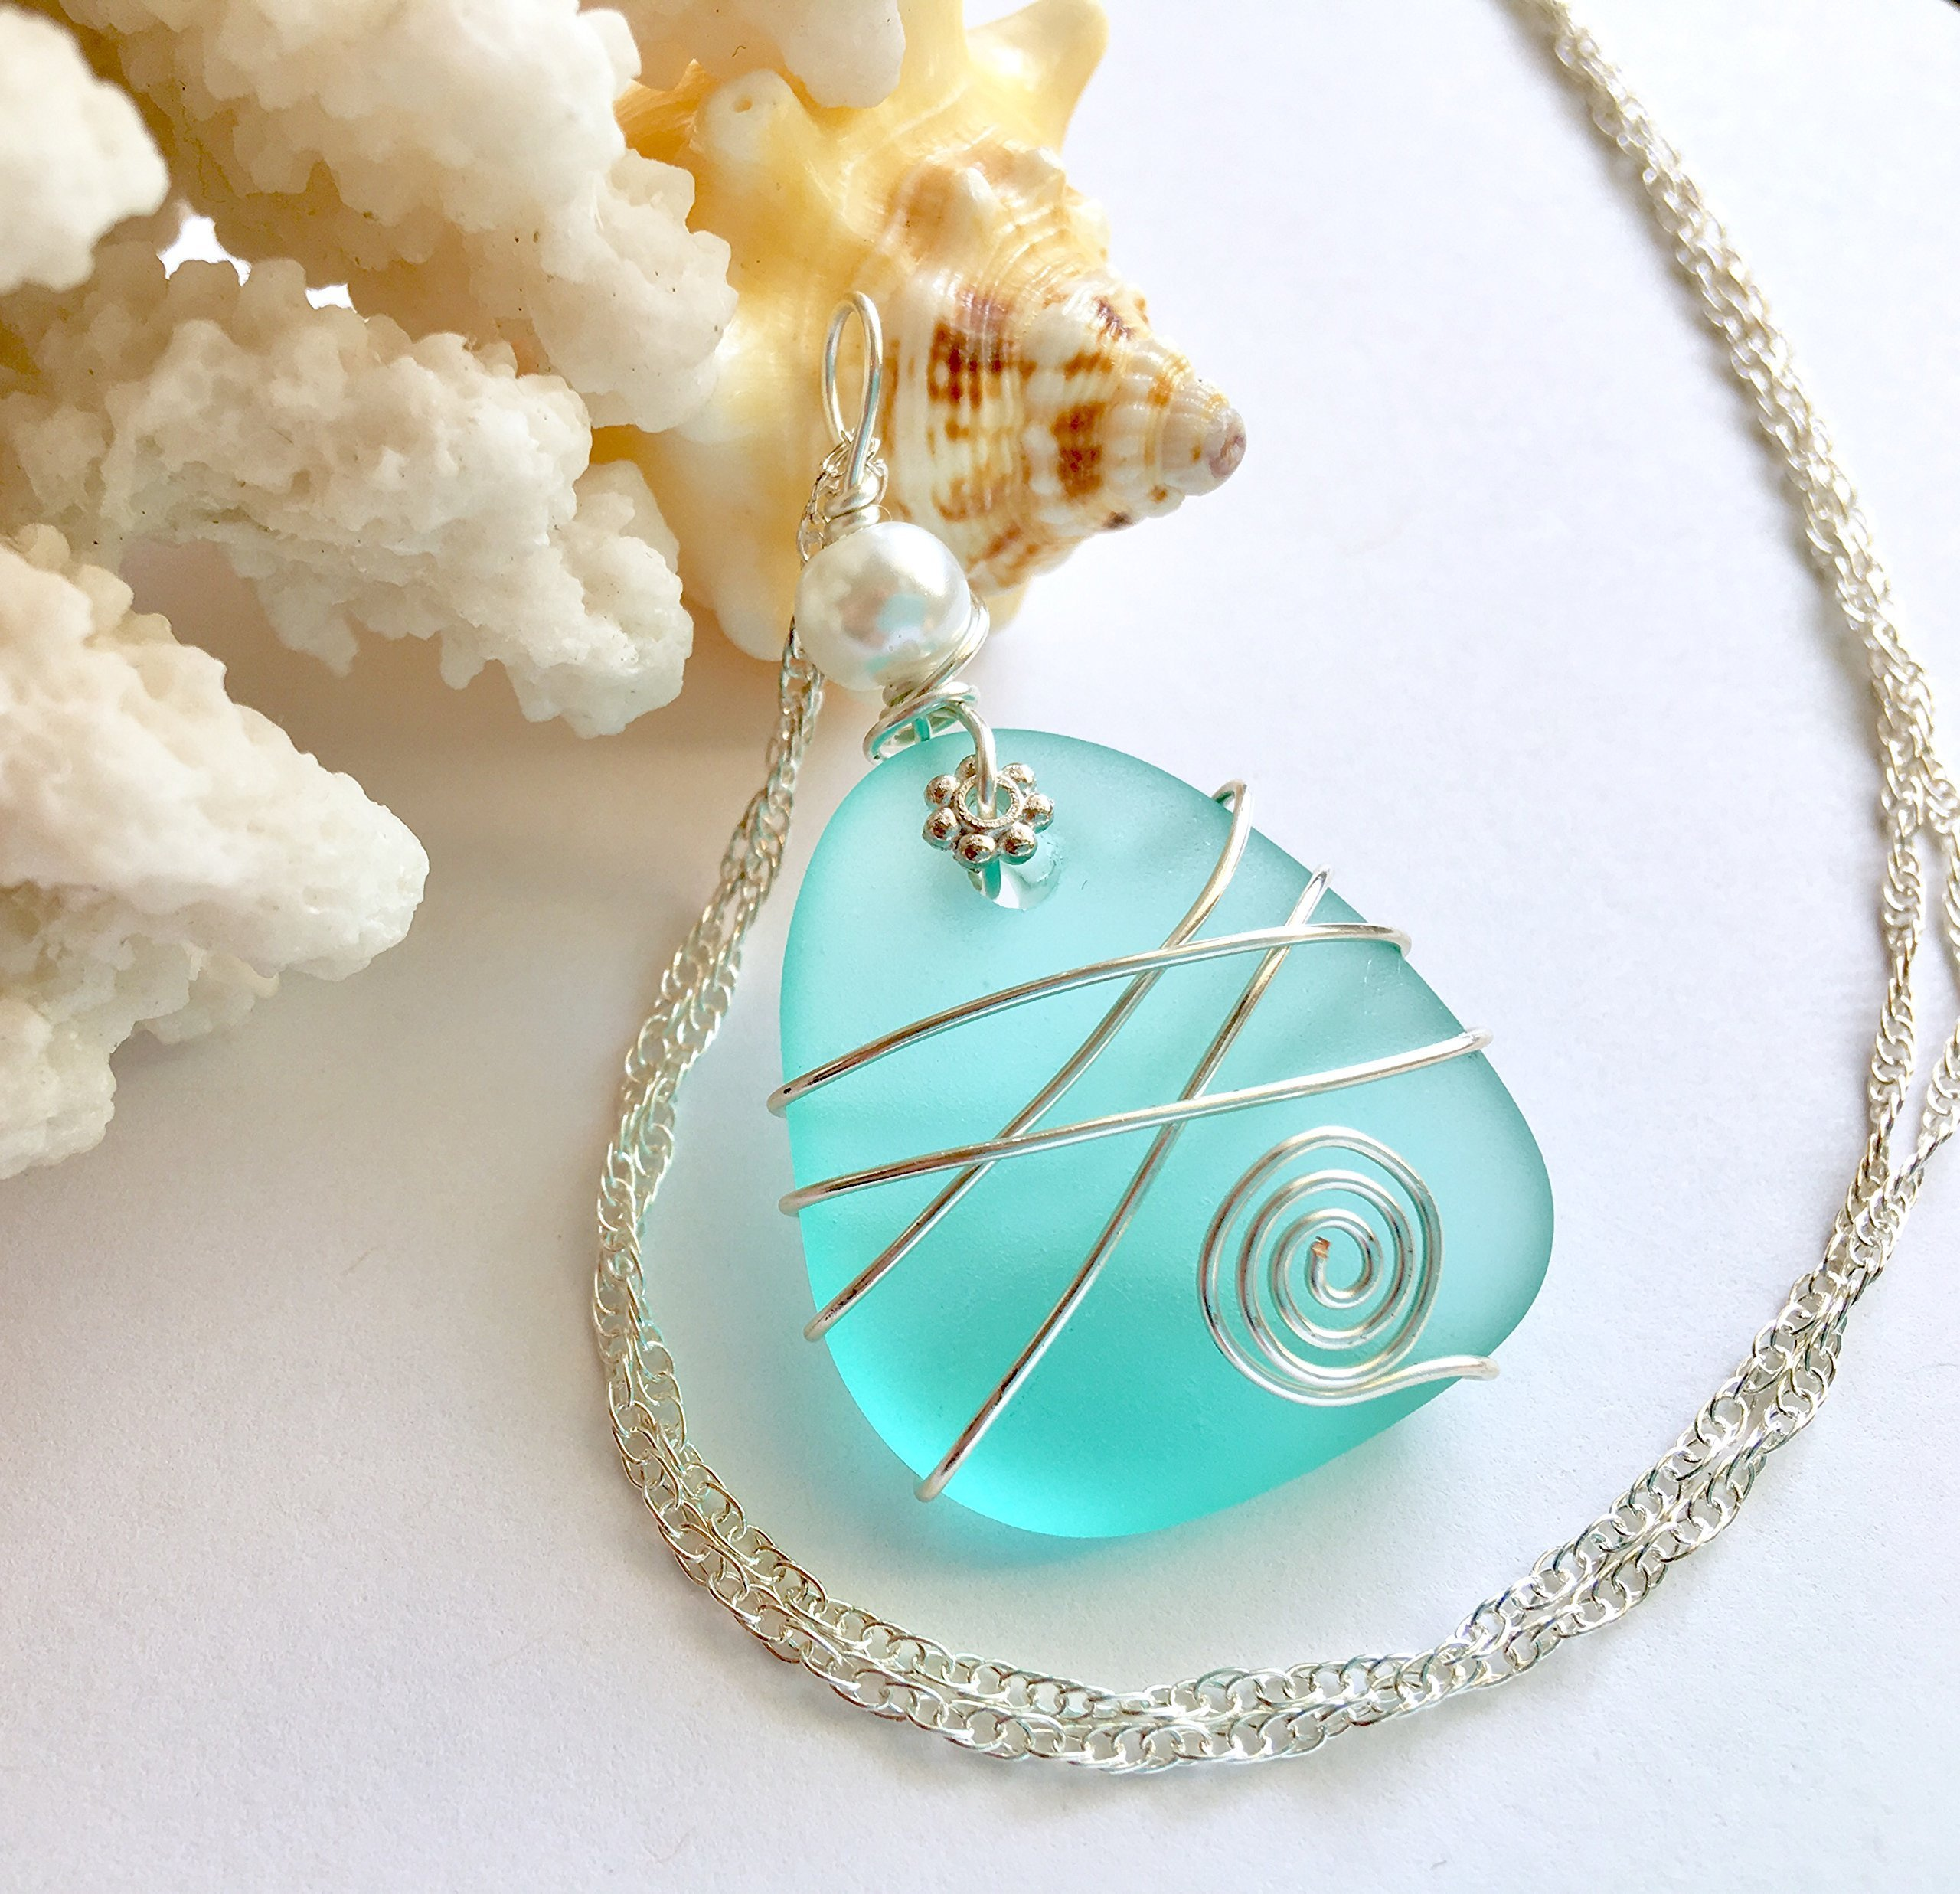 Handmade Top Selling Sea Foam Sterling Silver Necklace in Nautical Sea Glass Jewelry STERLING SILVER CHAIN, Sea Glass Necklace, Sea Glass Jewelry, Seaglass Necklace